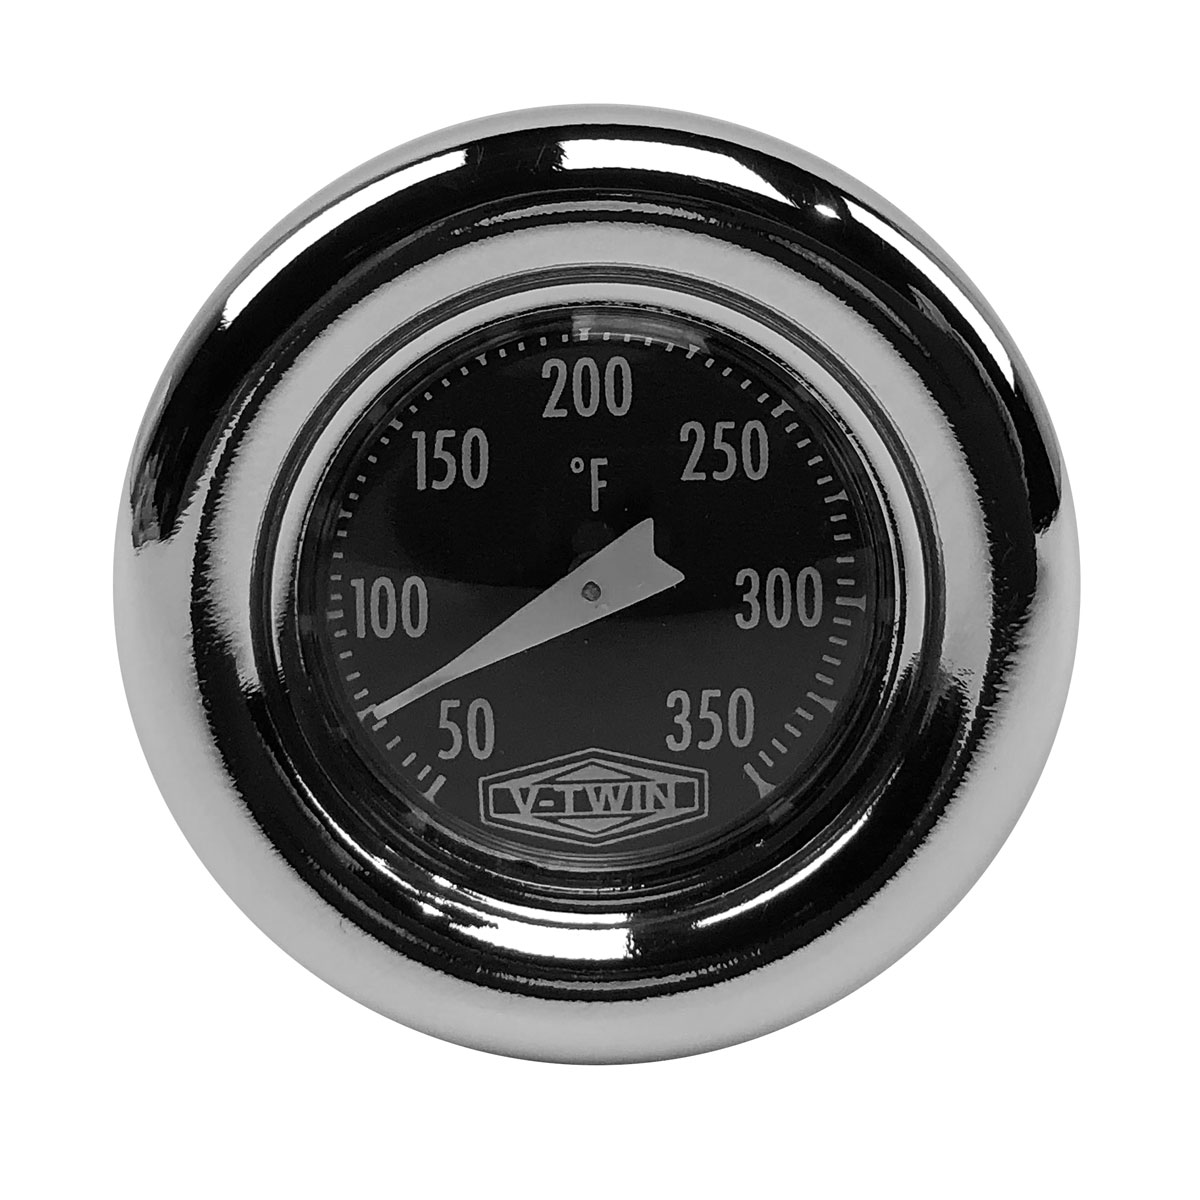 Bikers Choice 71559S3 Oil Tank Dipstick with Temperature Gauge harley push in